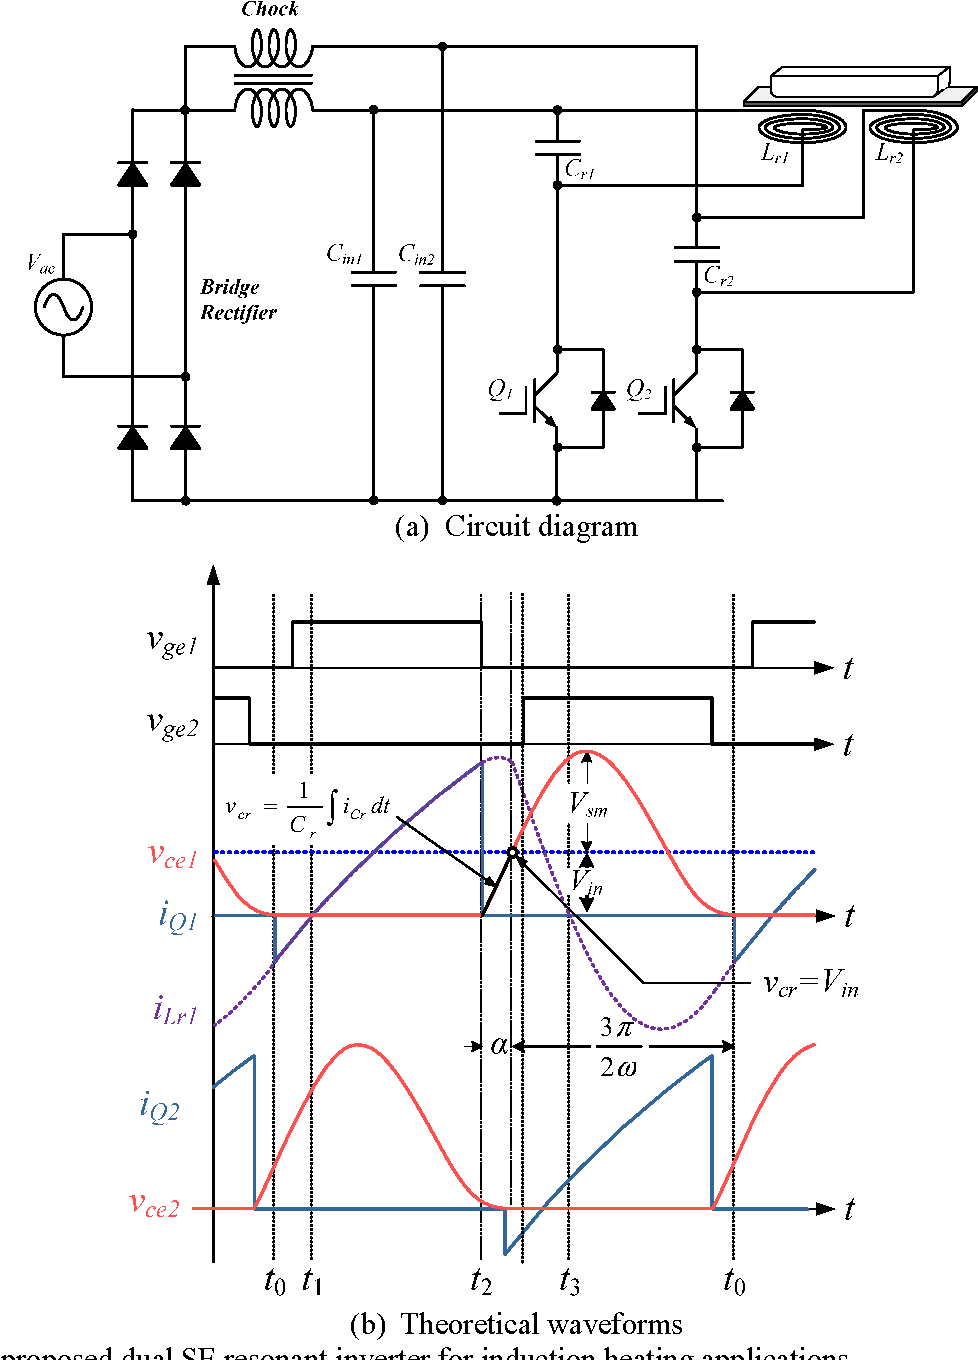 A 36kw Single Ended Resonant Inverter For Induction Heating Circuit Diagram Of Heater Applications Semantic Scholar